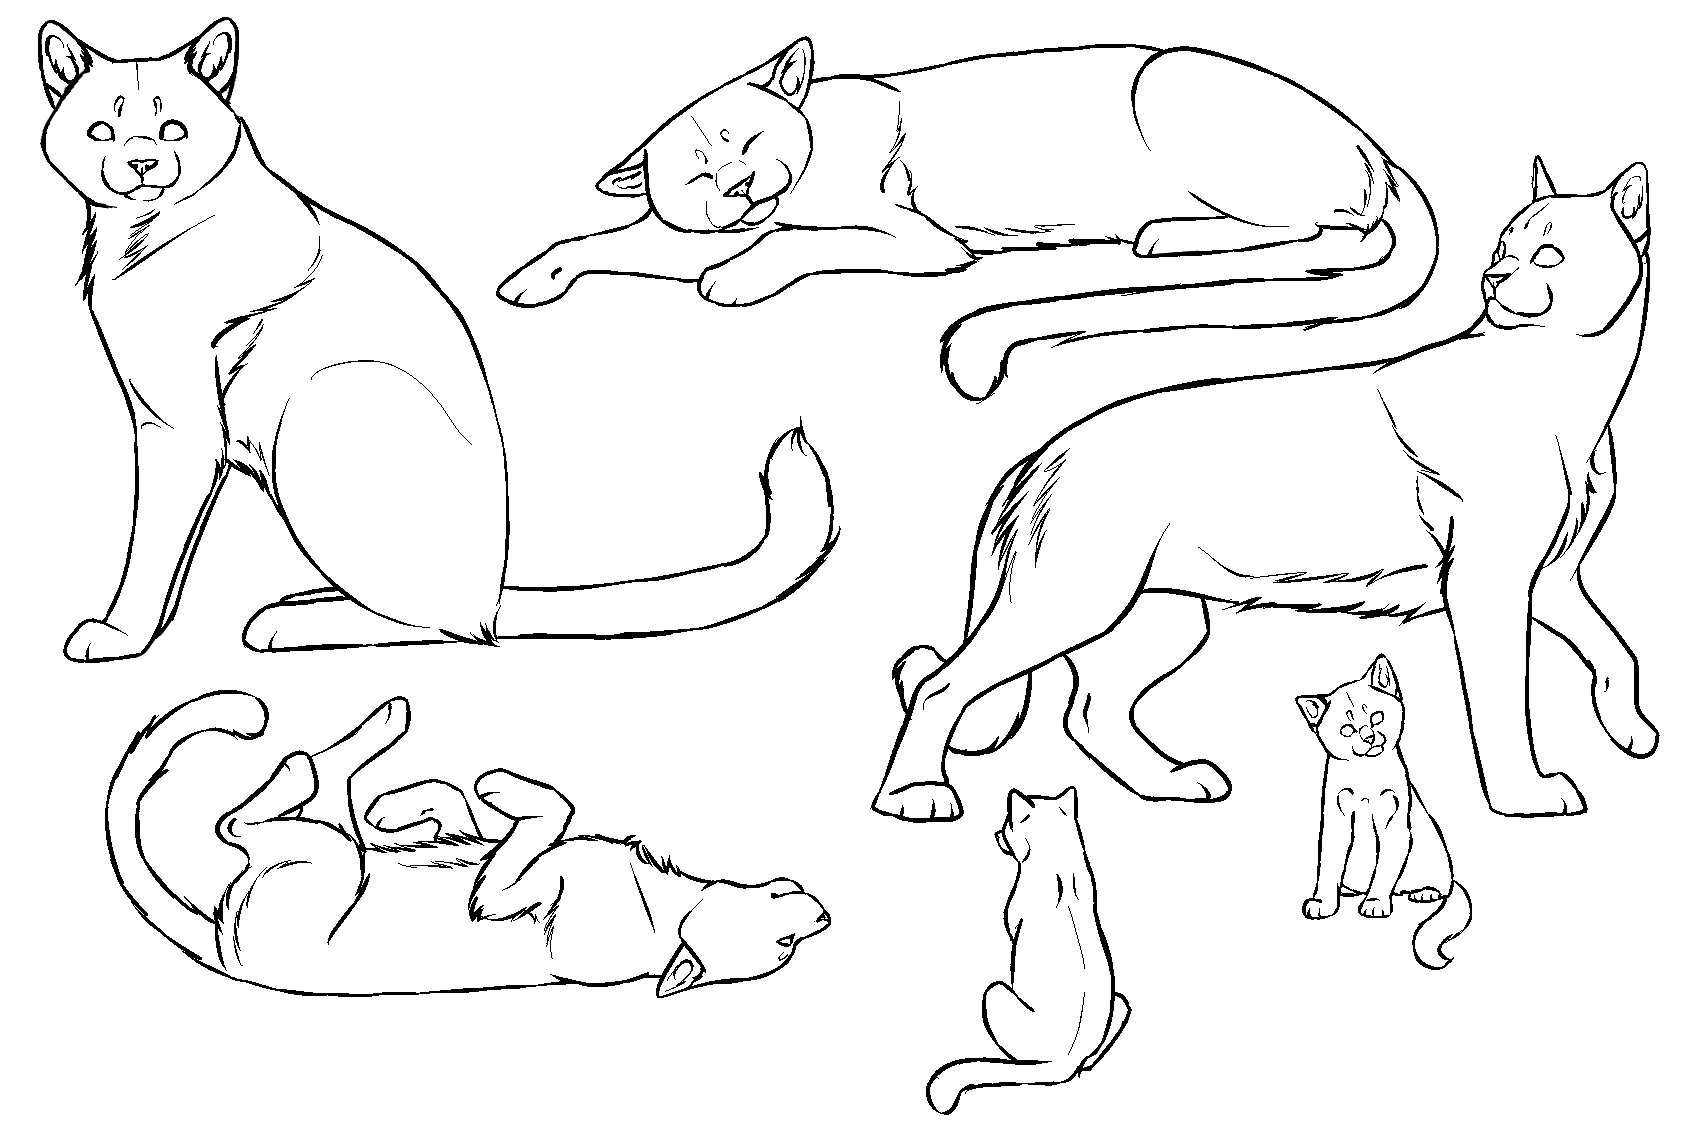 Cat Lineart : Free cat lineart paint friendly by dikkebobby on deviantart